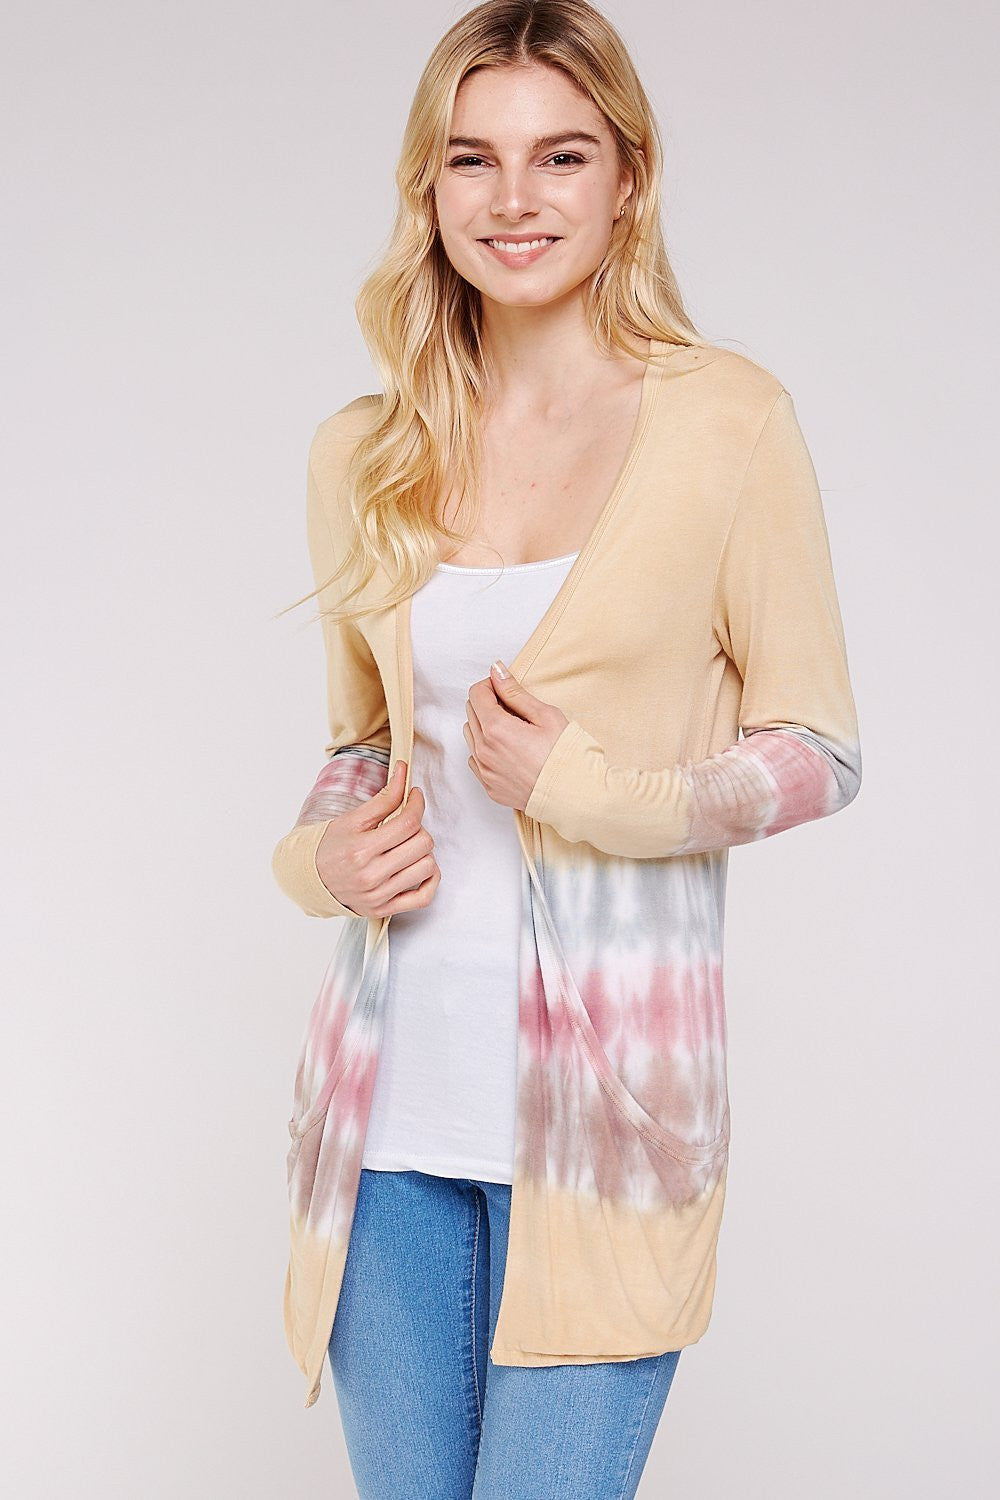 Wholesale Clothing, Online Wholesale Clothing, Women Clothing, Bohemian, Free People, tiedye, specialty wash, wholesale seller, wholesale women clothing shop, gypsy look, USA made, URBAN X APPAREL-CARDIGANS-UCR3197, fashiontrend2019